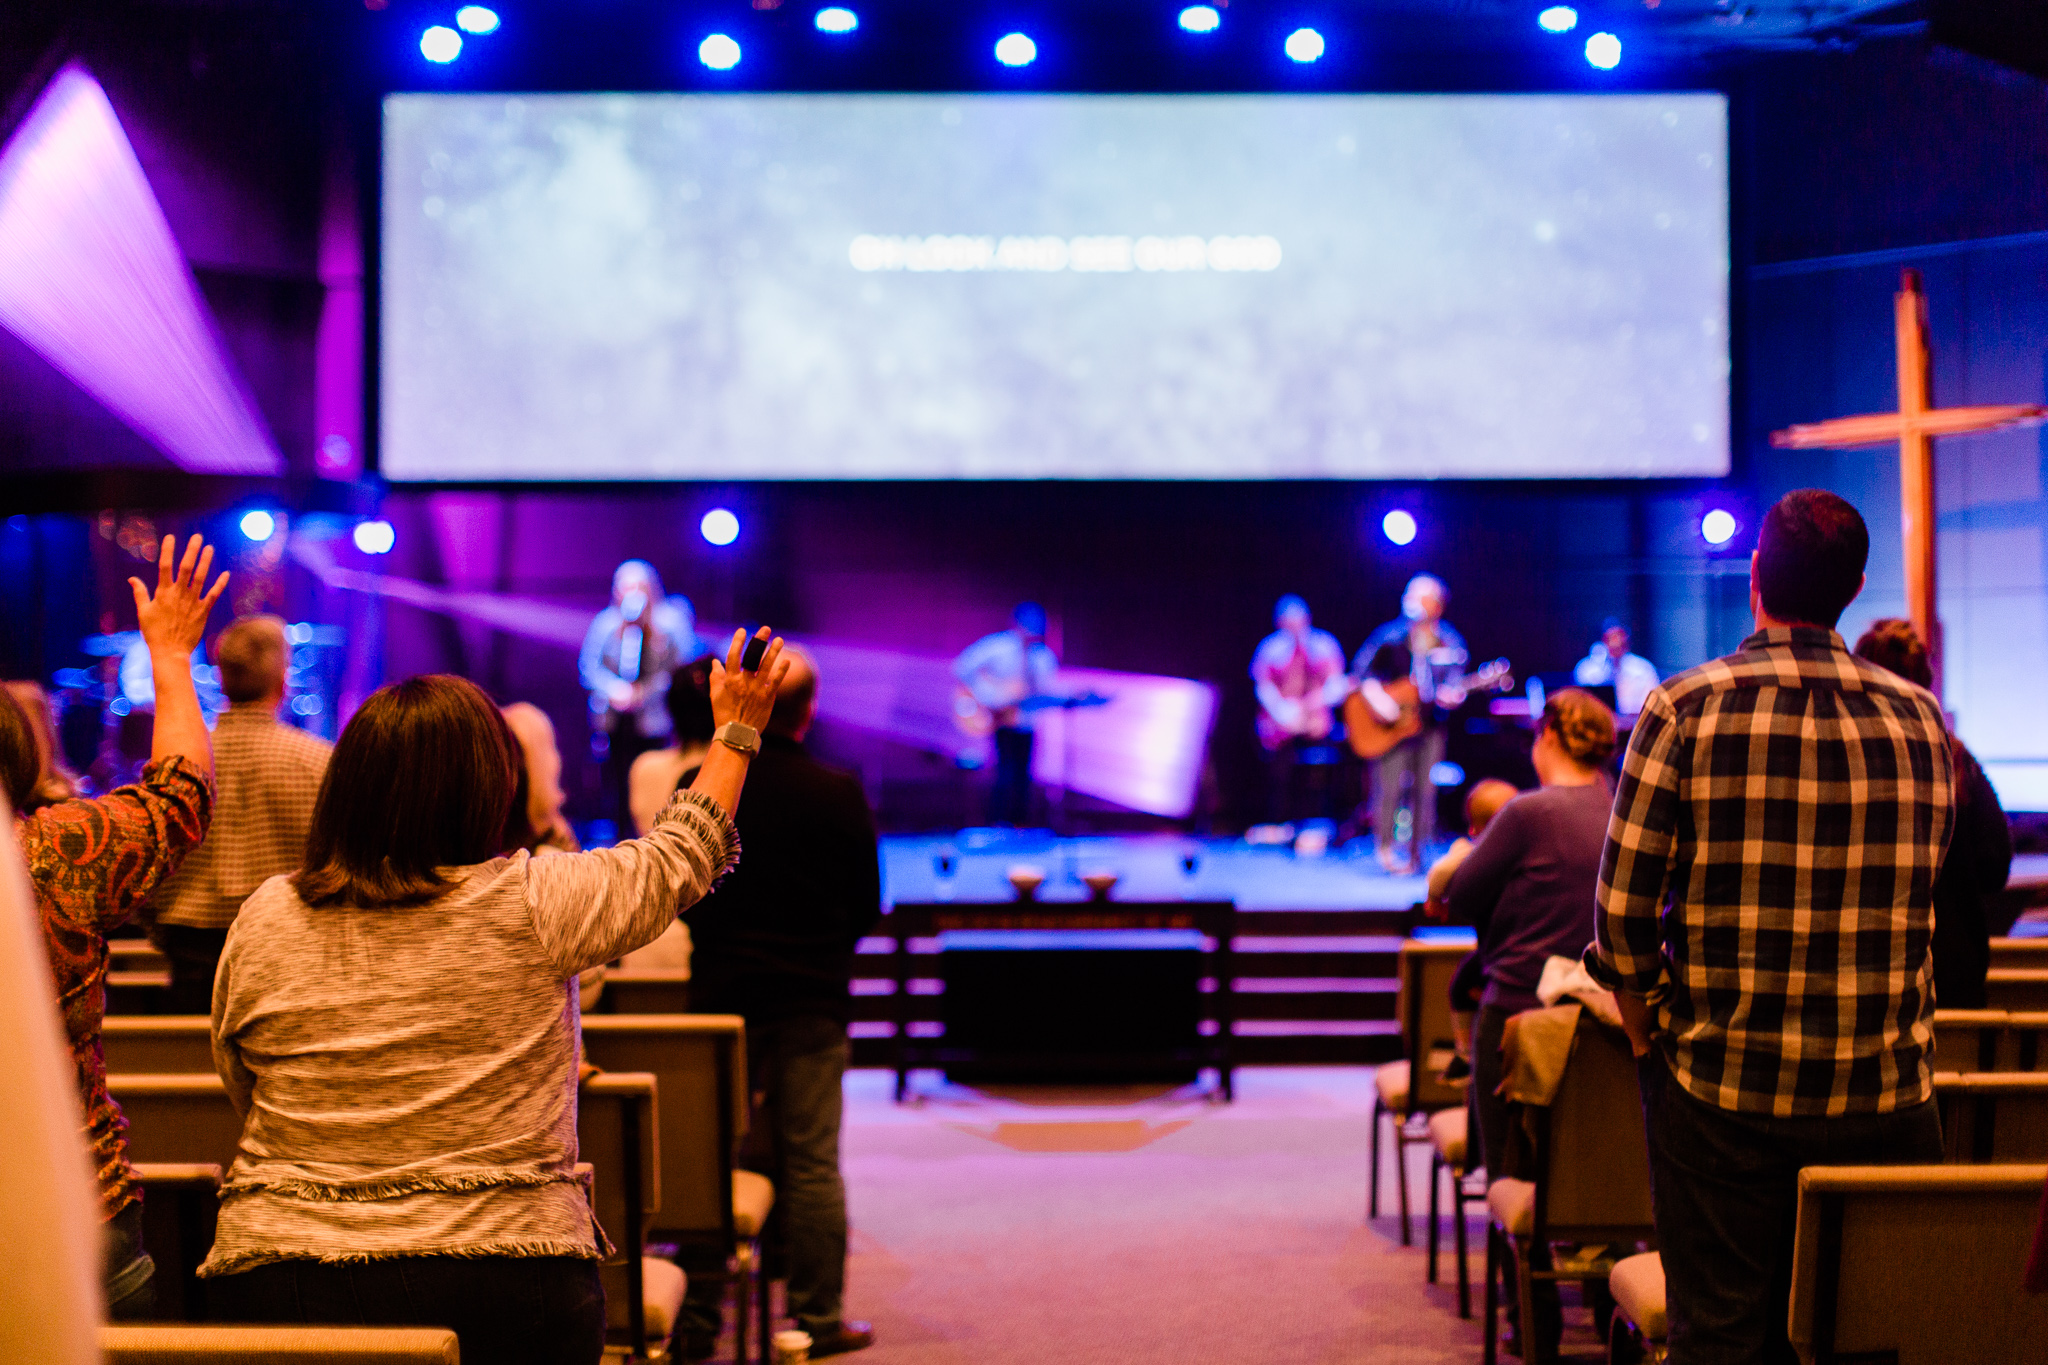 God uses habits and practices, inside and outside the church, to shape our worship